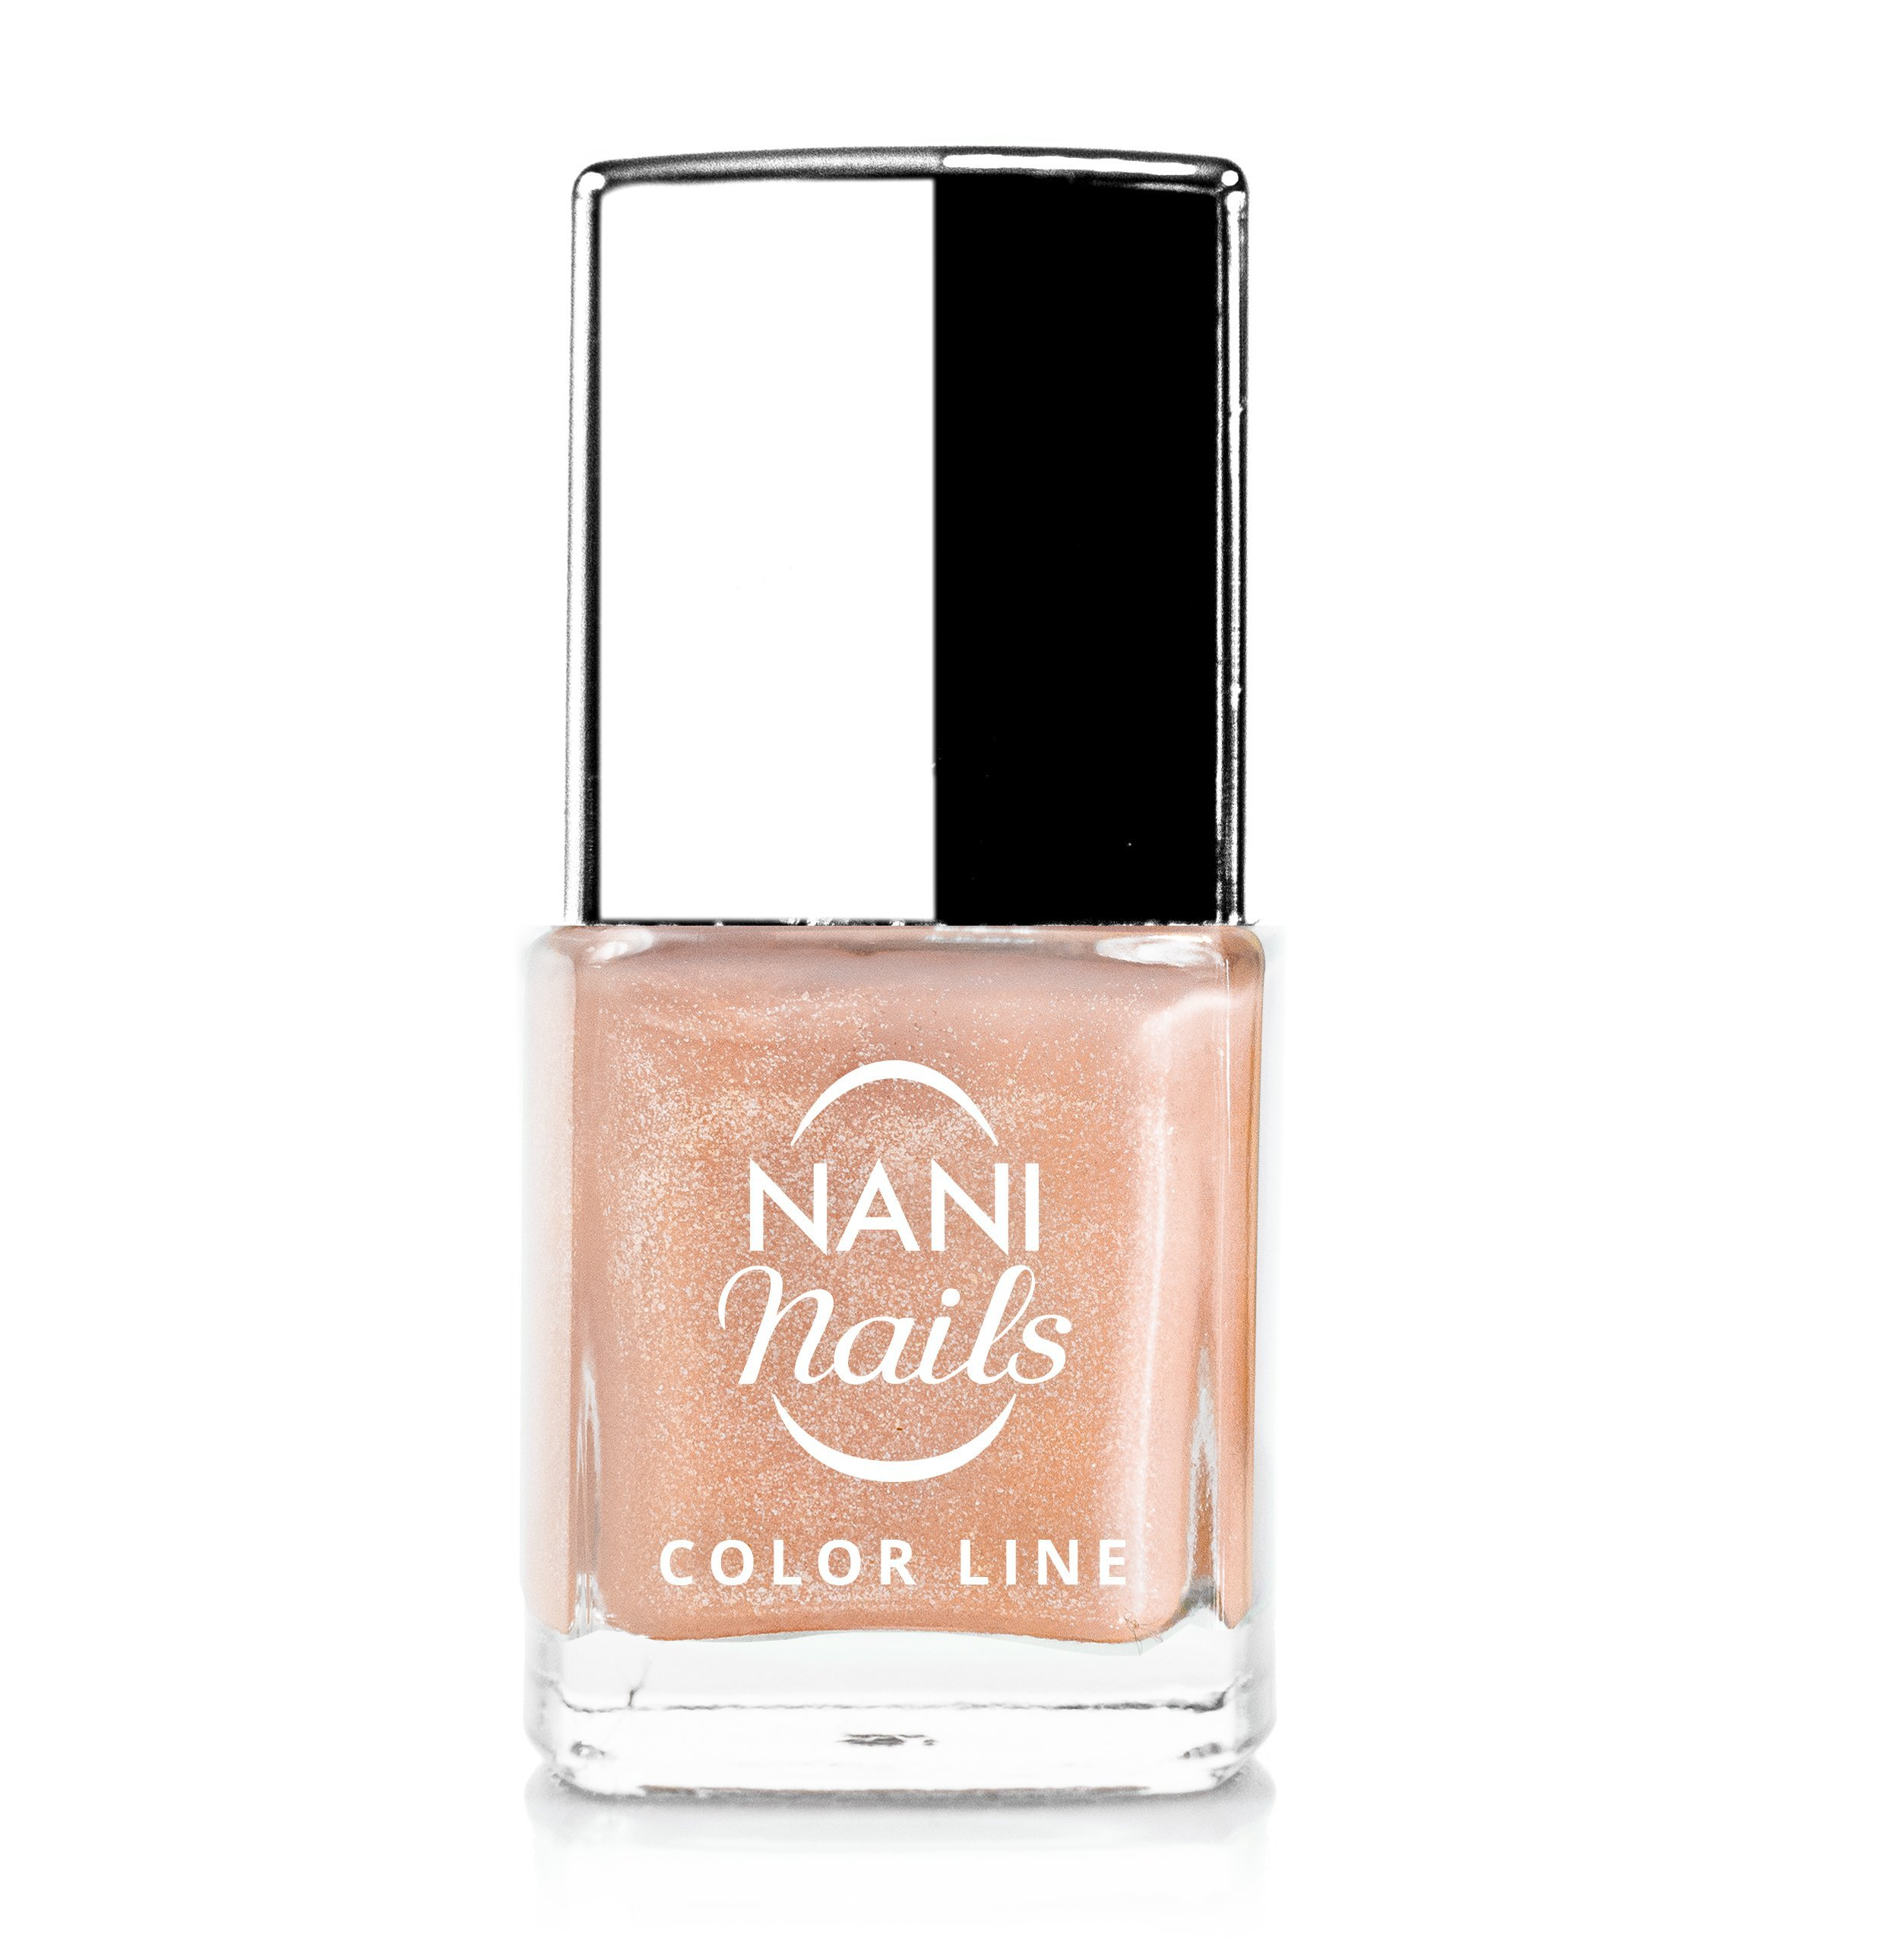 NANI lak Color Line 9 ml - 44